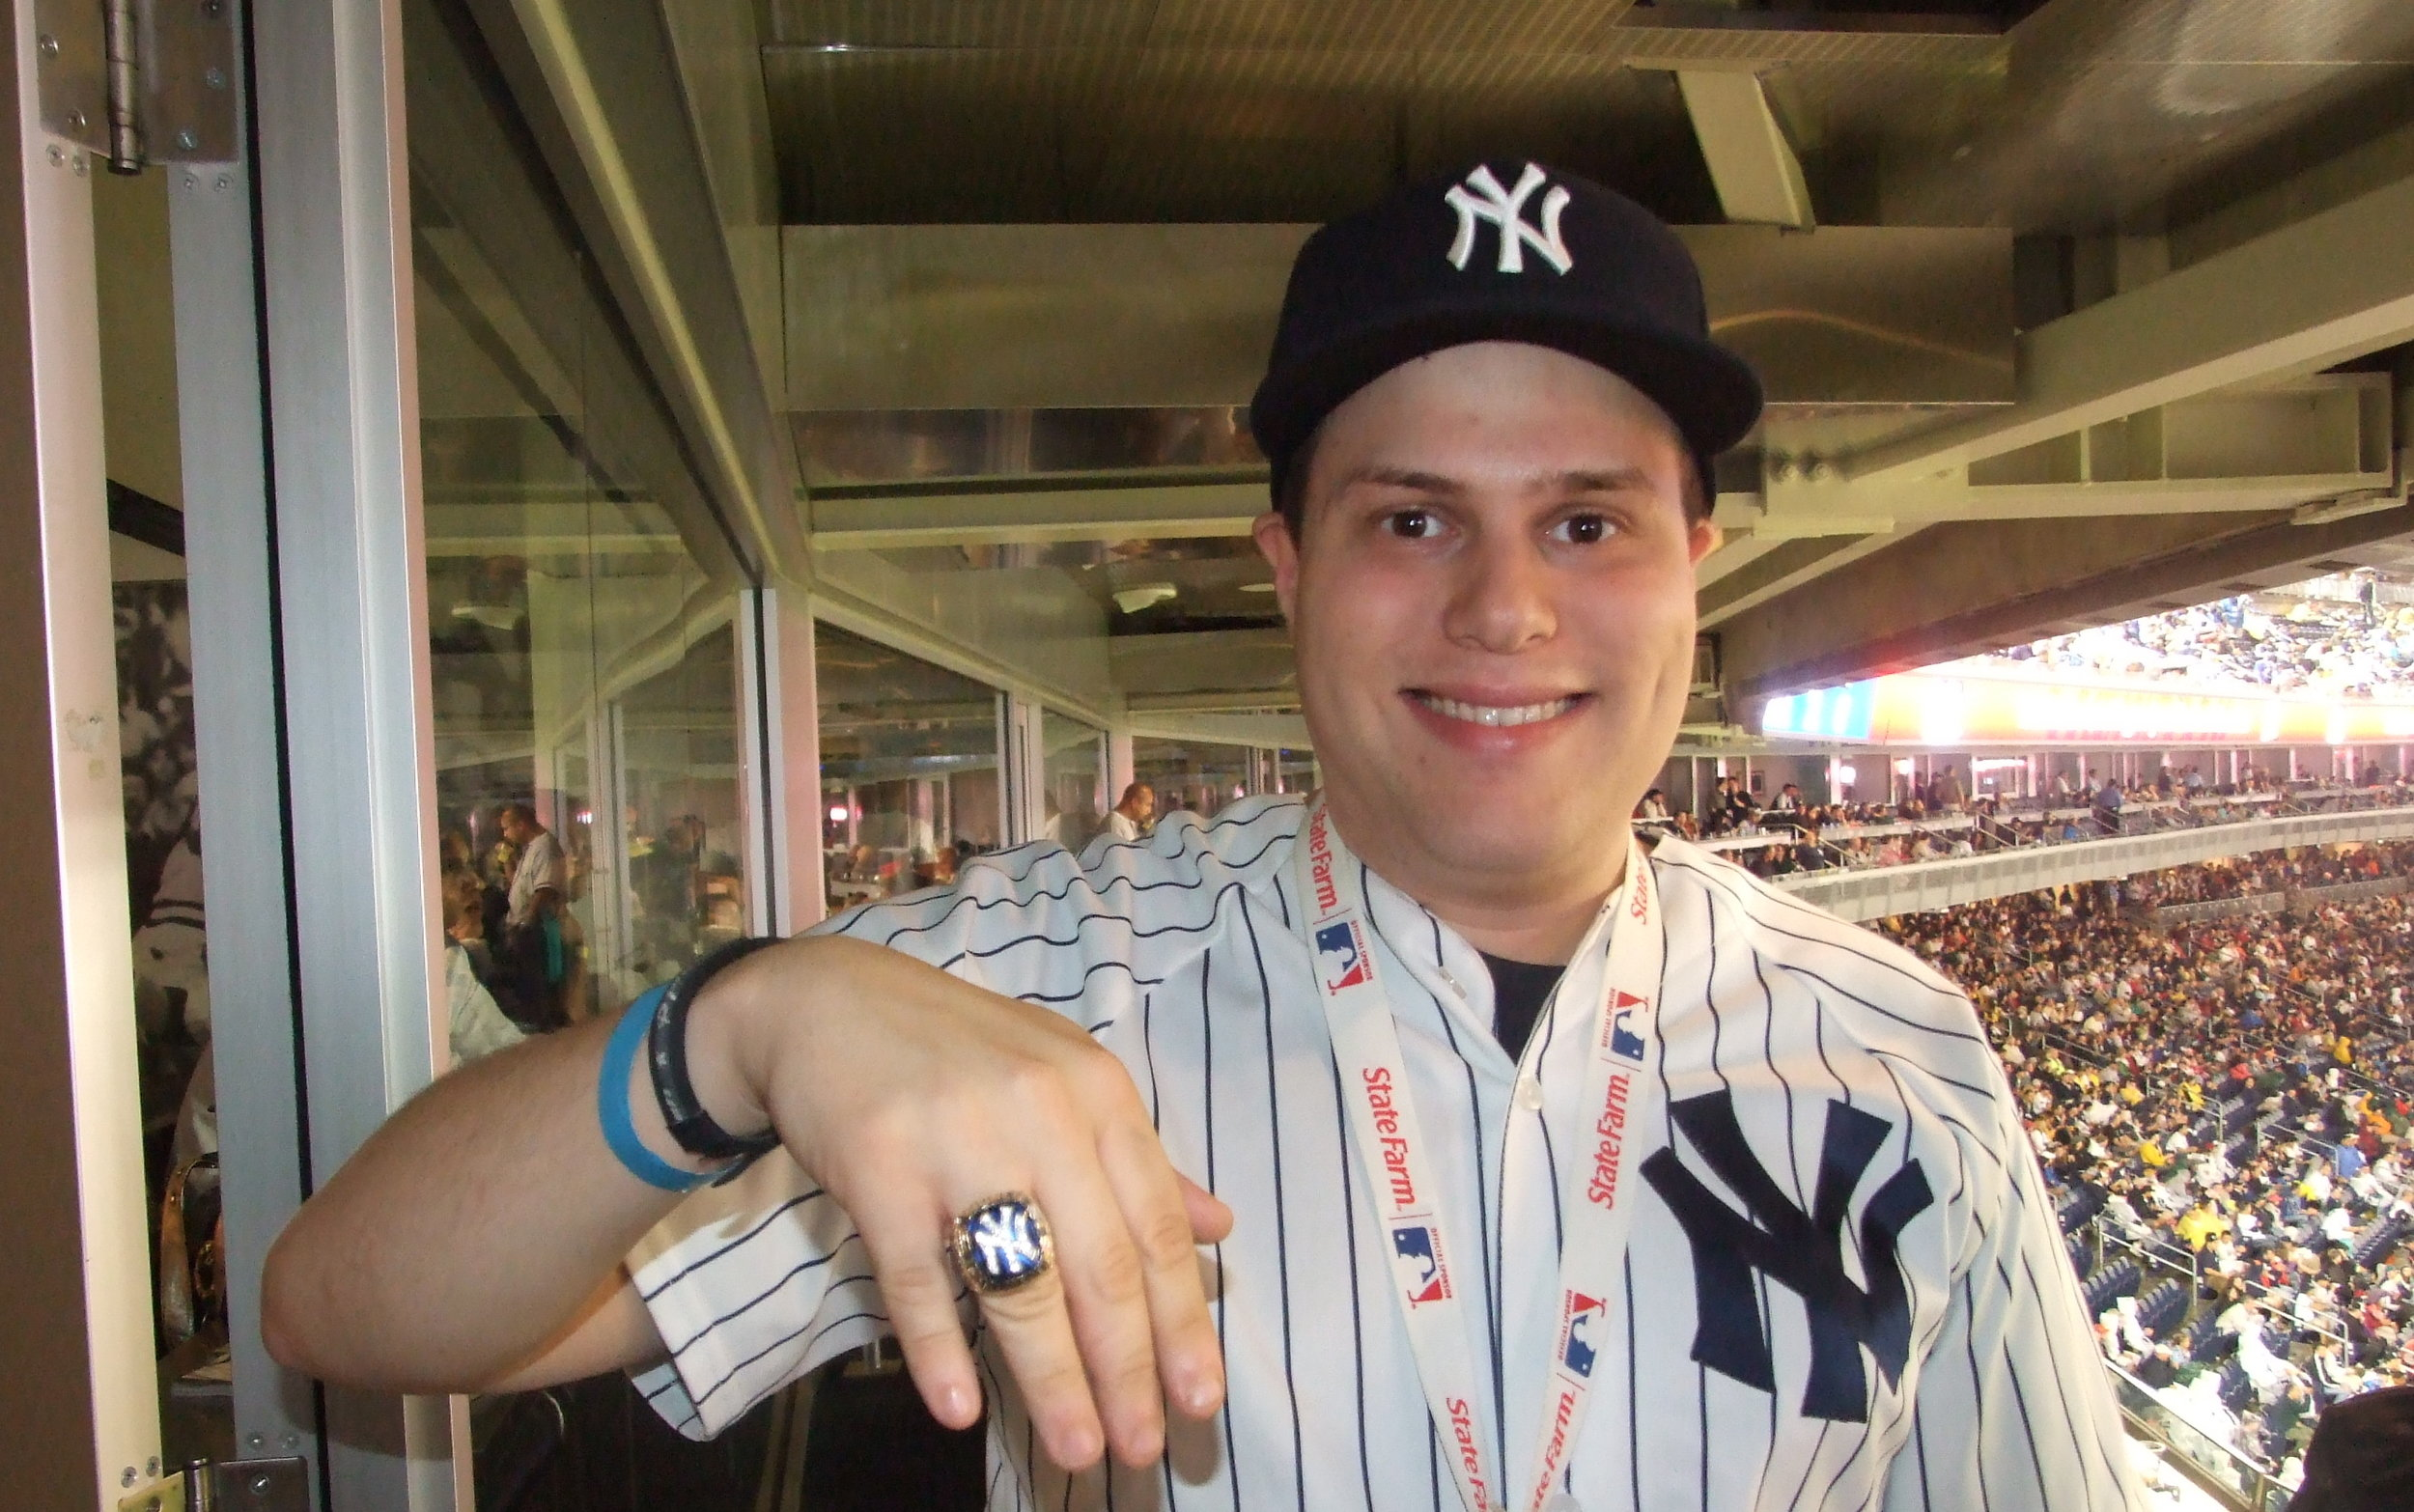 Steve wearing World Series ring.JPG